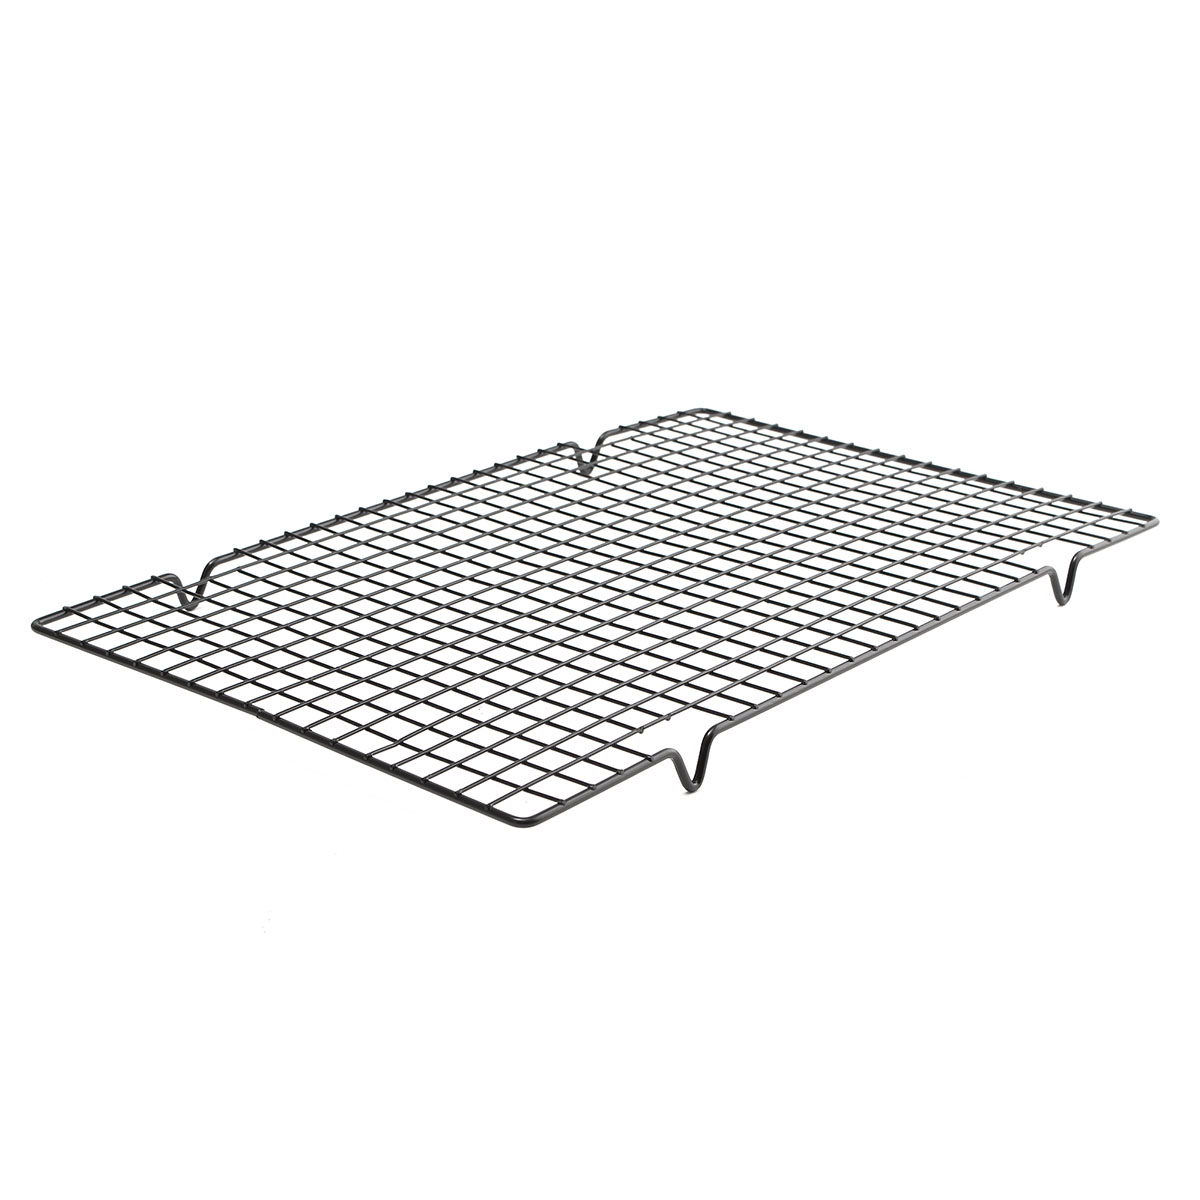 For Wrighton Oven Cooker Grill Pan Grid Rack Shelf Mesh Food Stand 344mm X 222mm